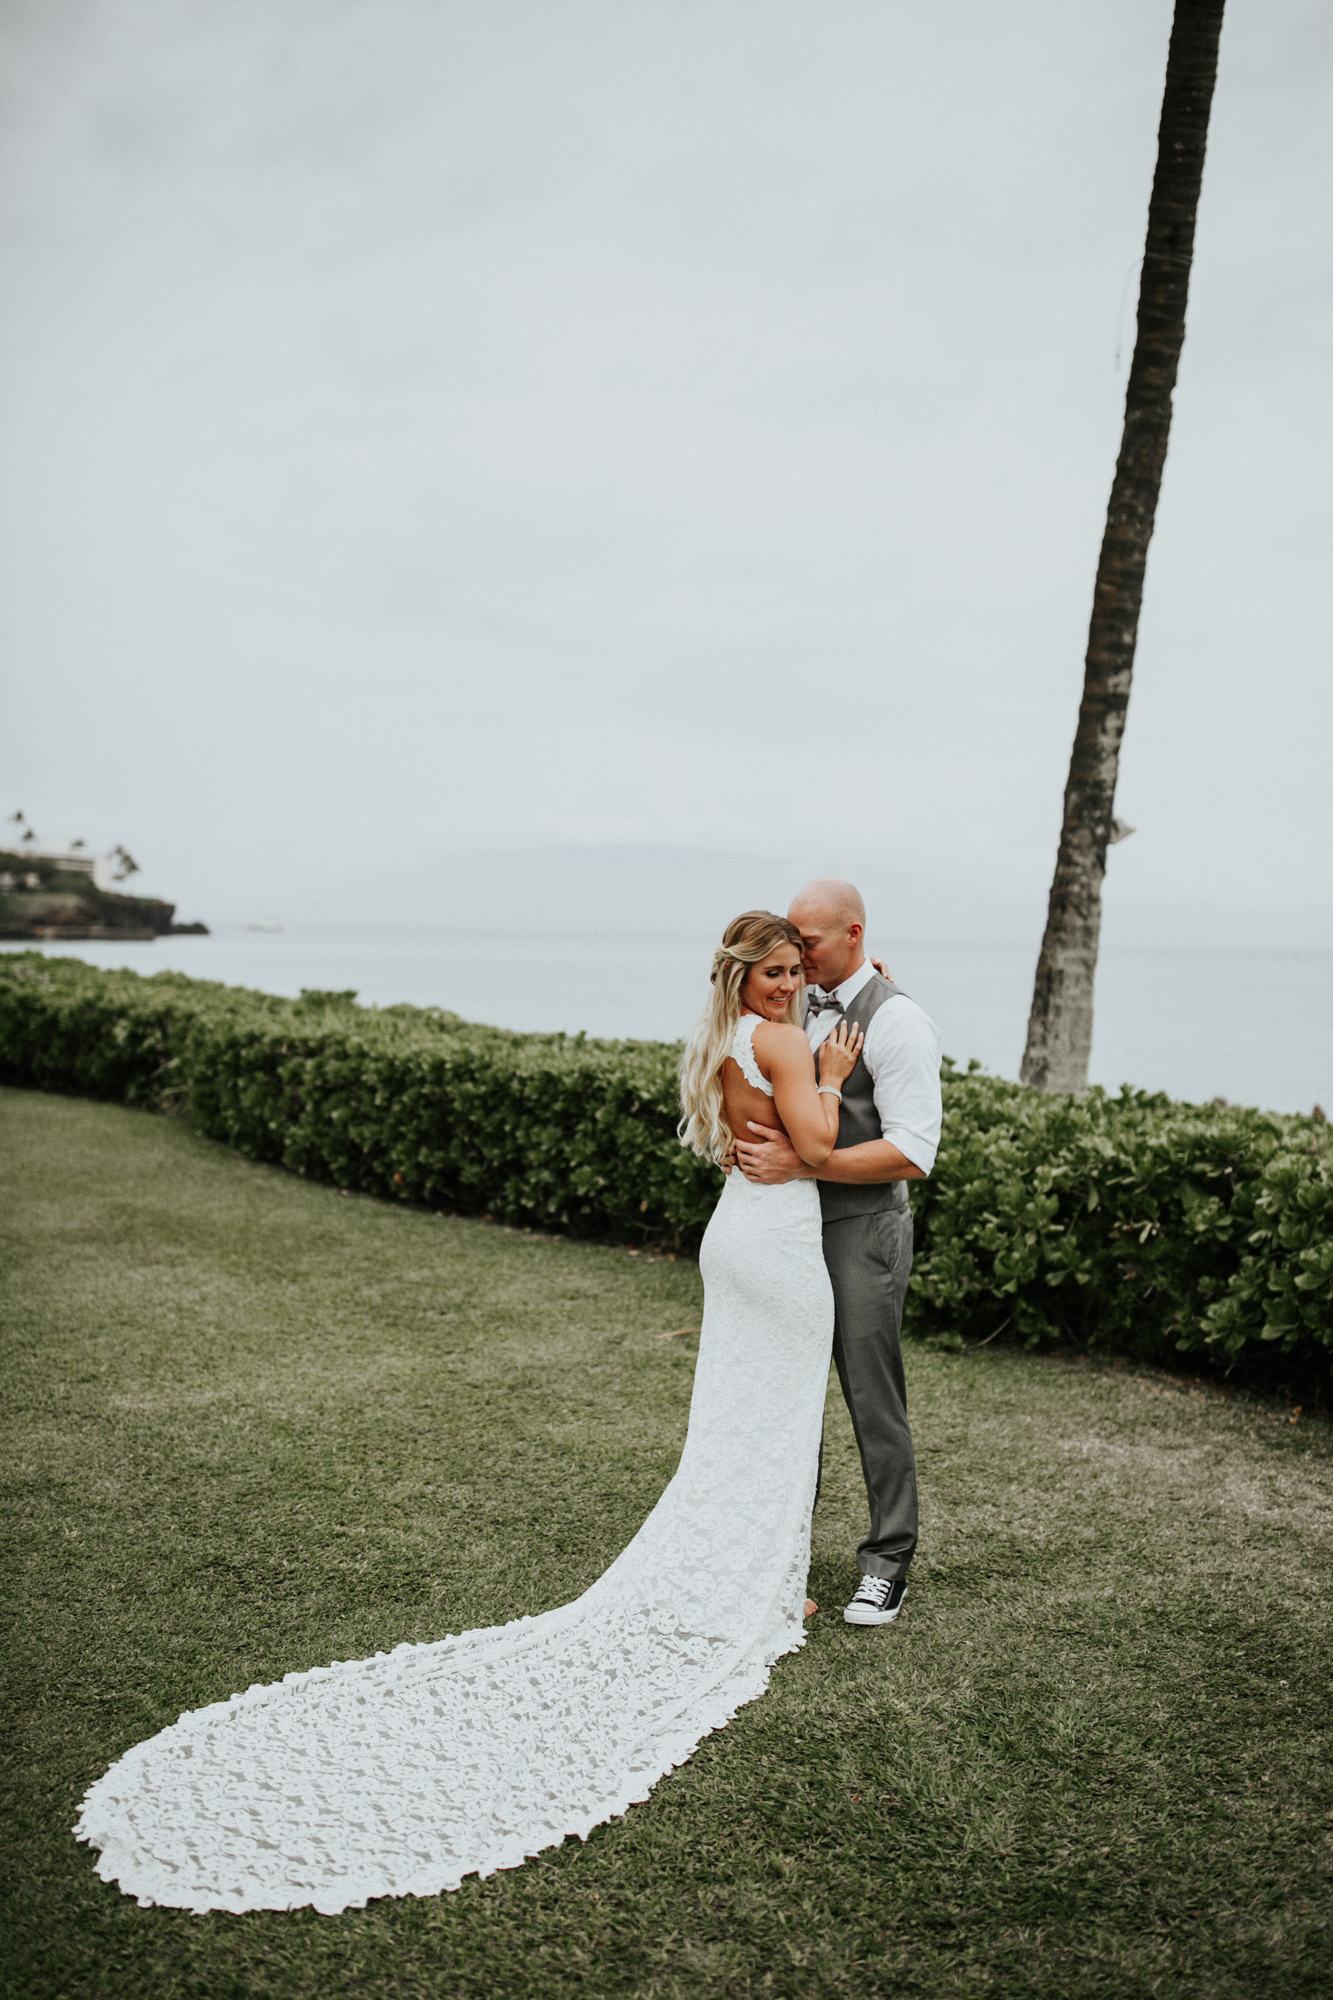 destination-wedding-photographer-hawaii-maui-elopement-40.jpg